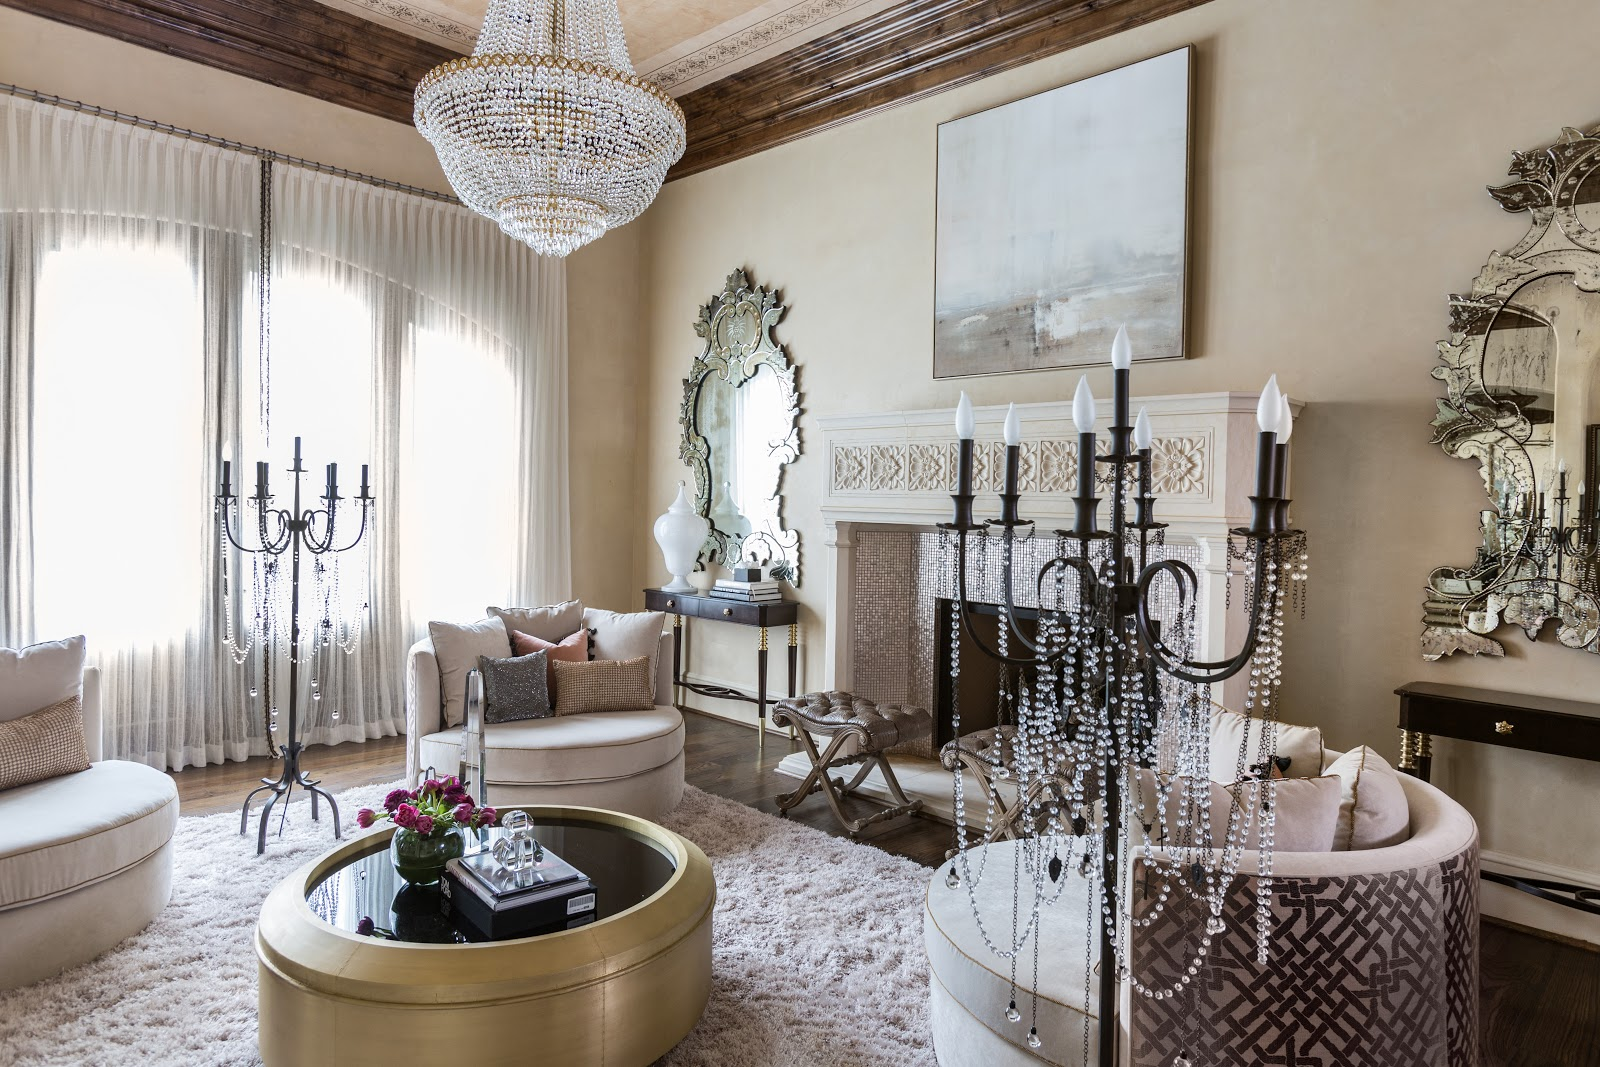 Antique chandelier in luxurious living room - Dbh-biz.info Interior Design